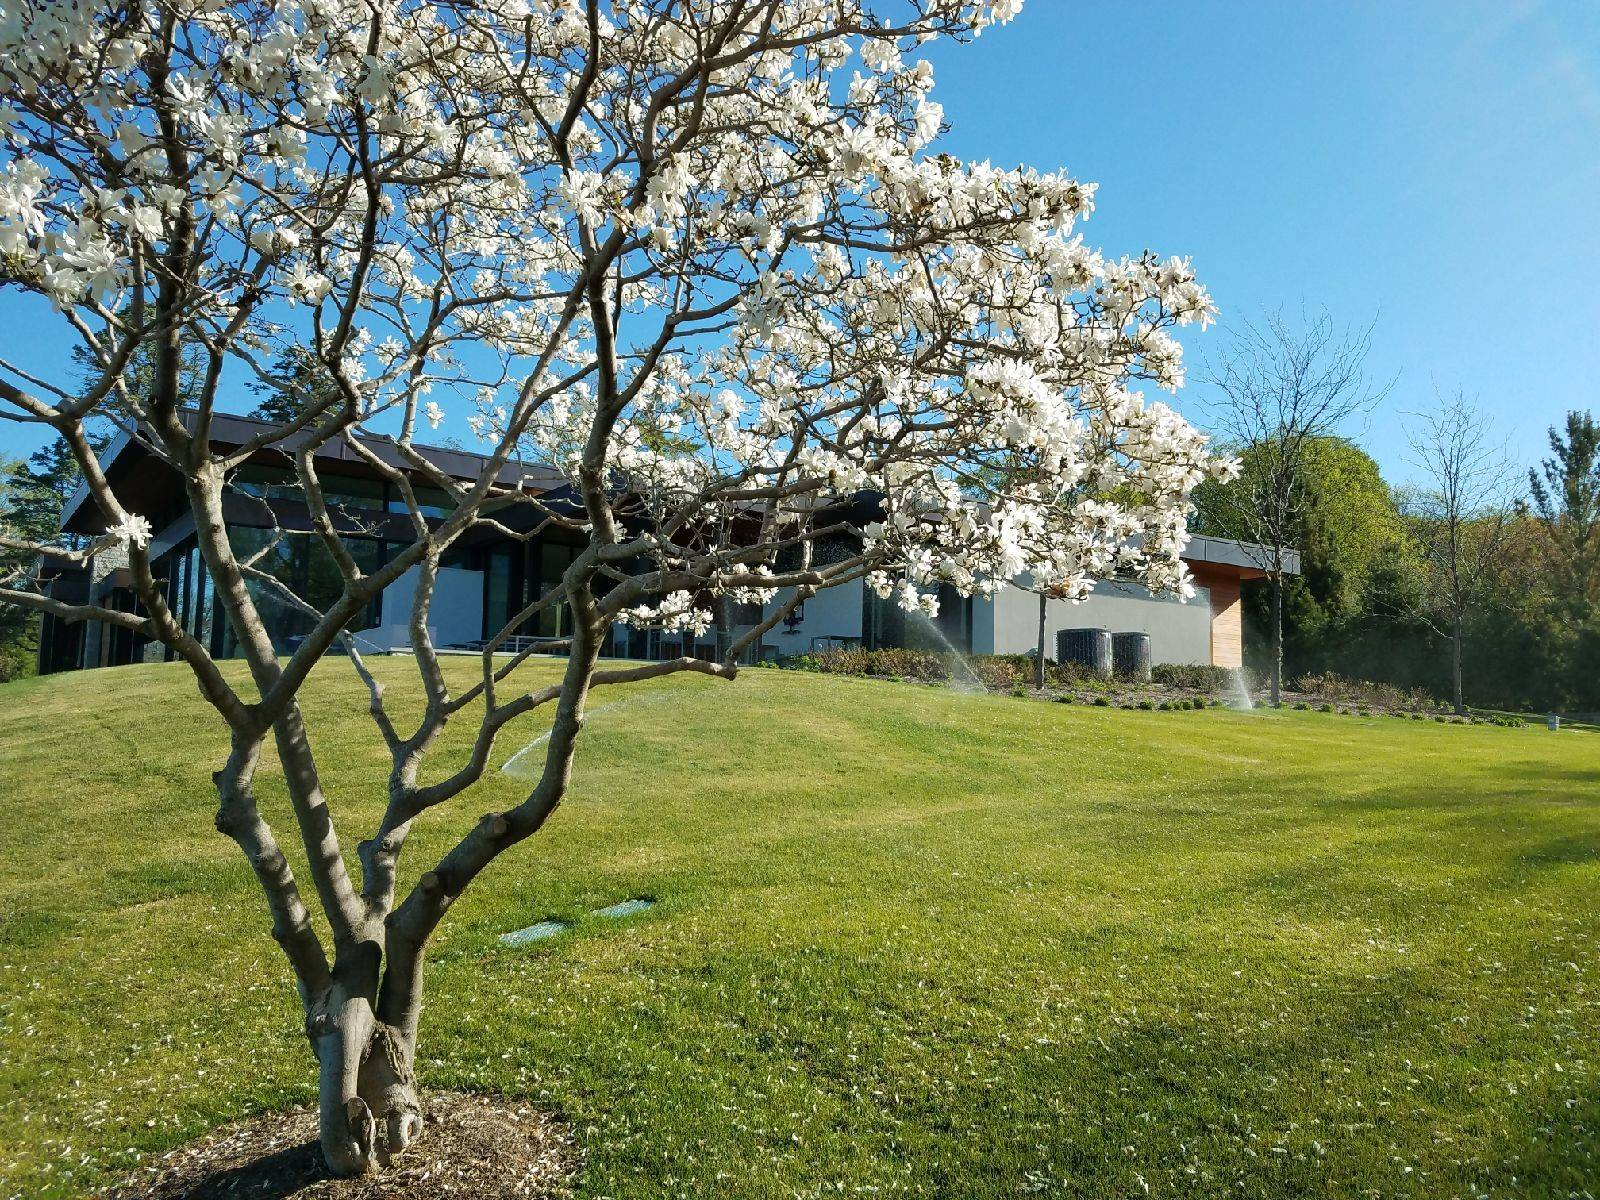 blossoming tree with sprinklers in background